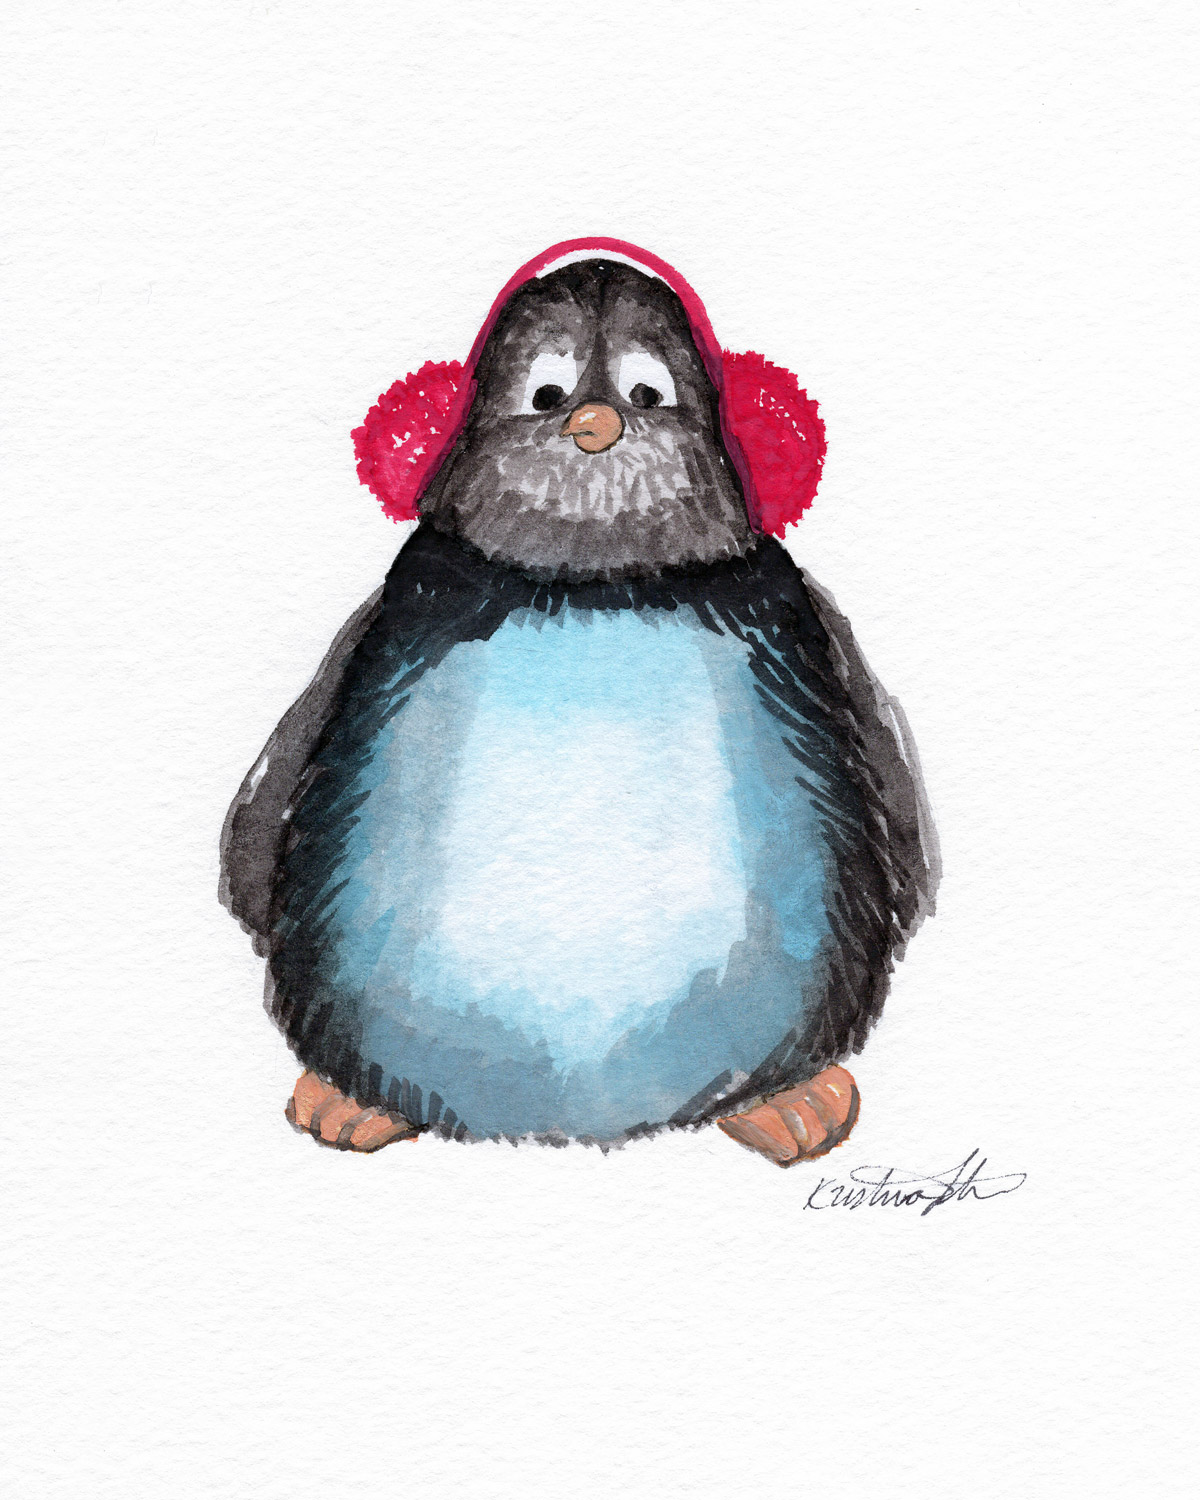 KLS_Animals_Penguin_SFW.jpg